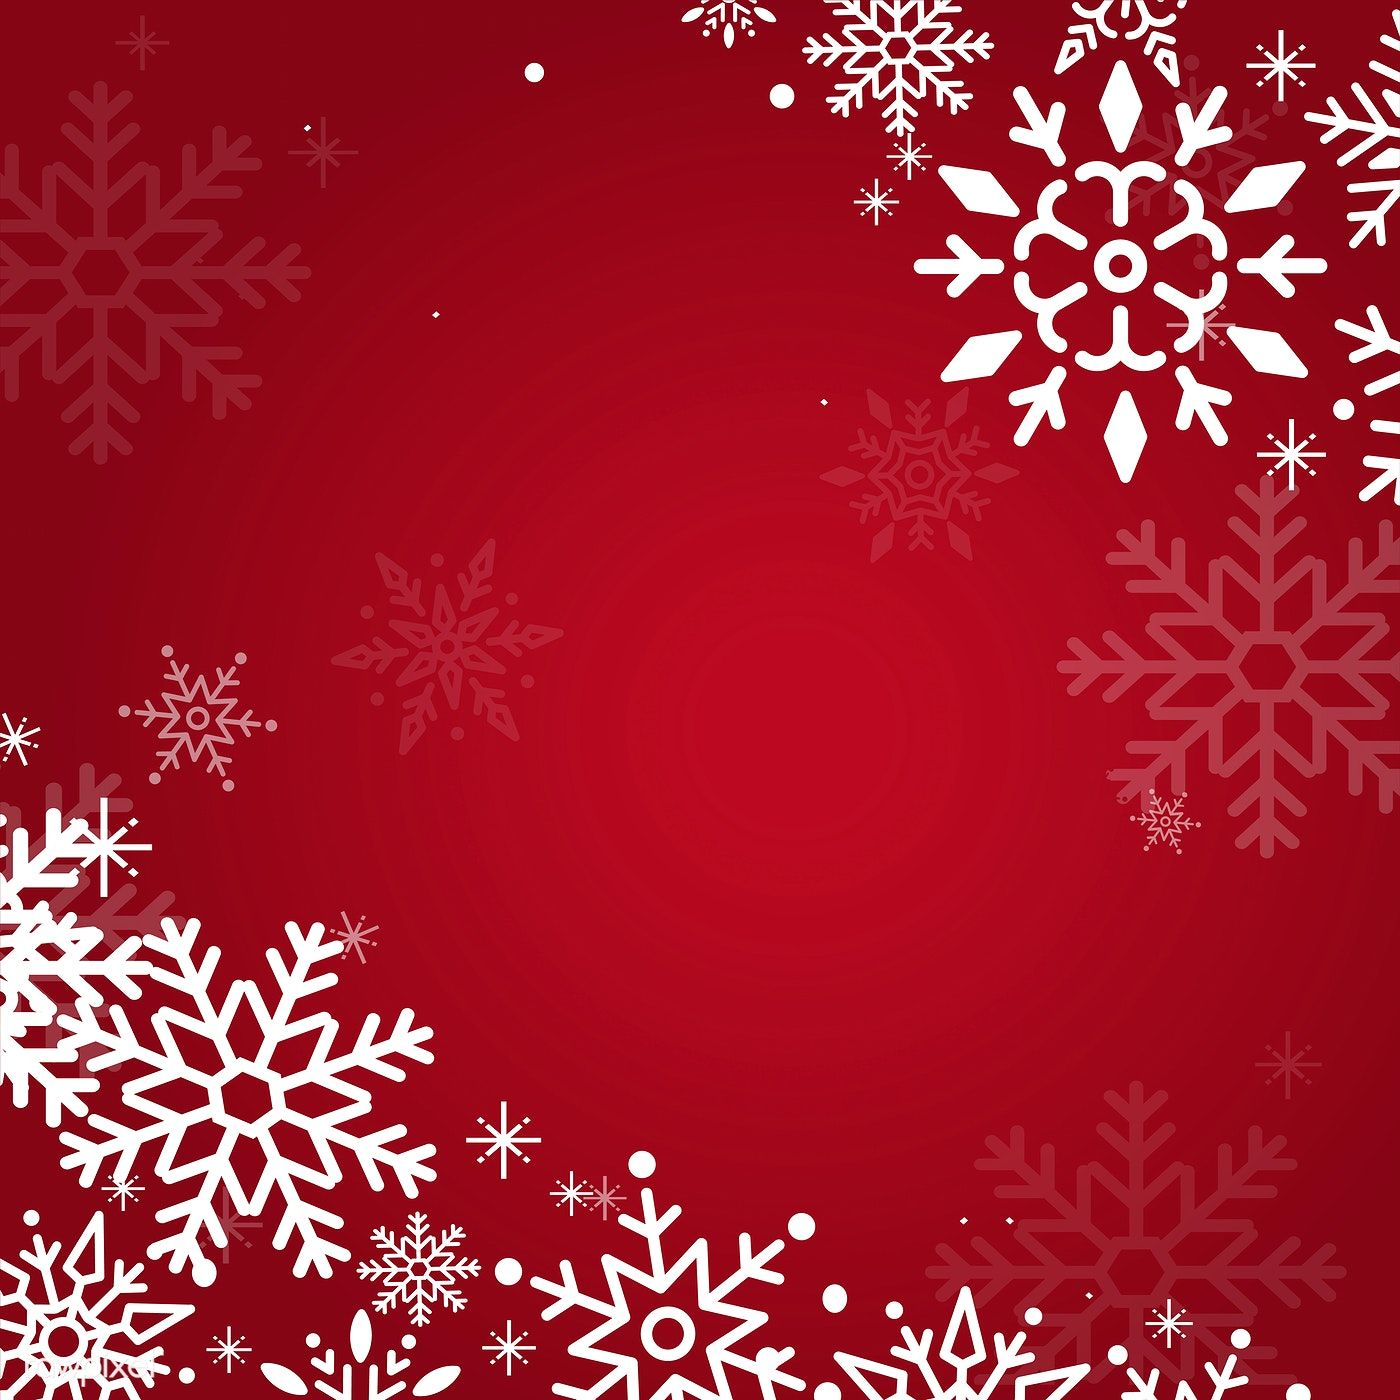 Red Christmas Winter Holiday Background With Snowflake Vector Free Image By Rawpixel Com Holiday Background Red Christmas Winter Holidays